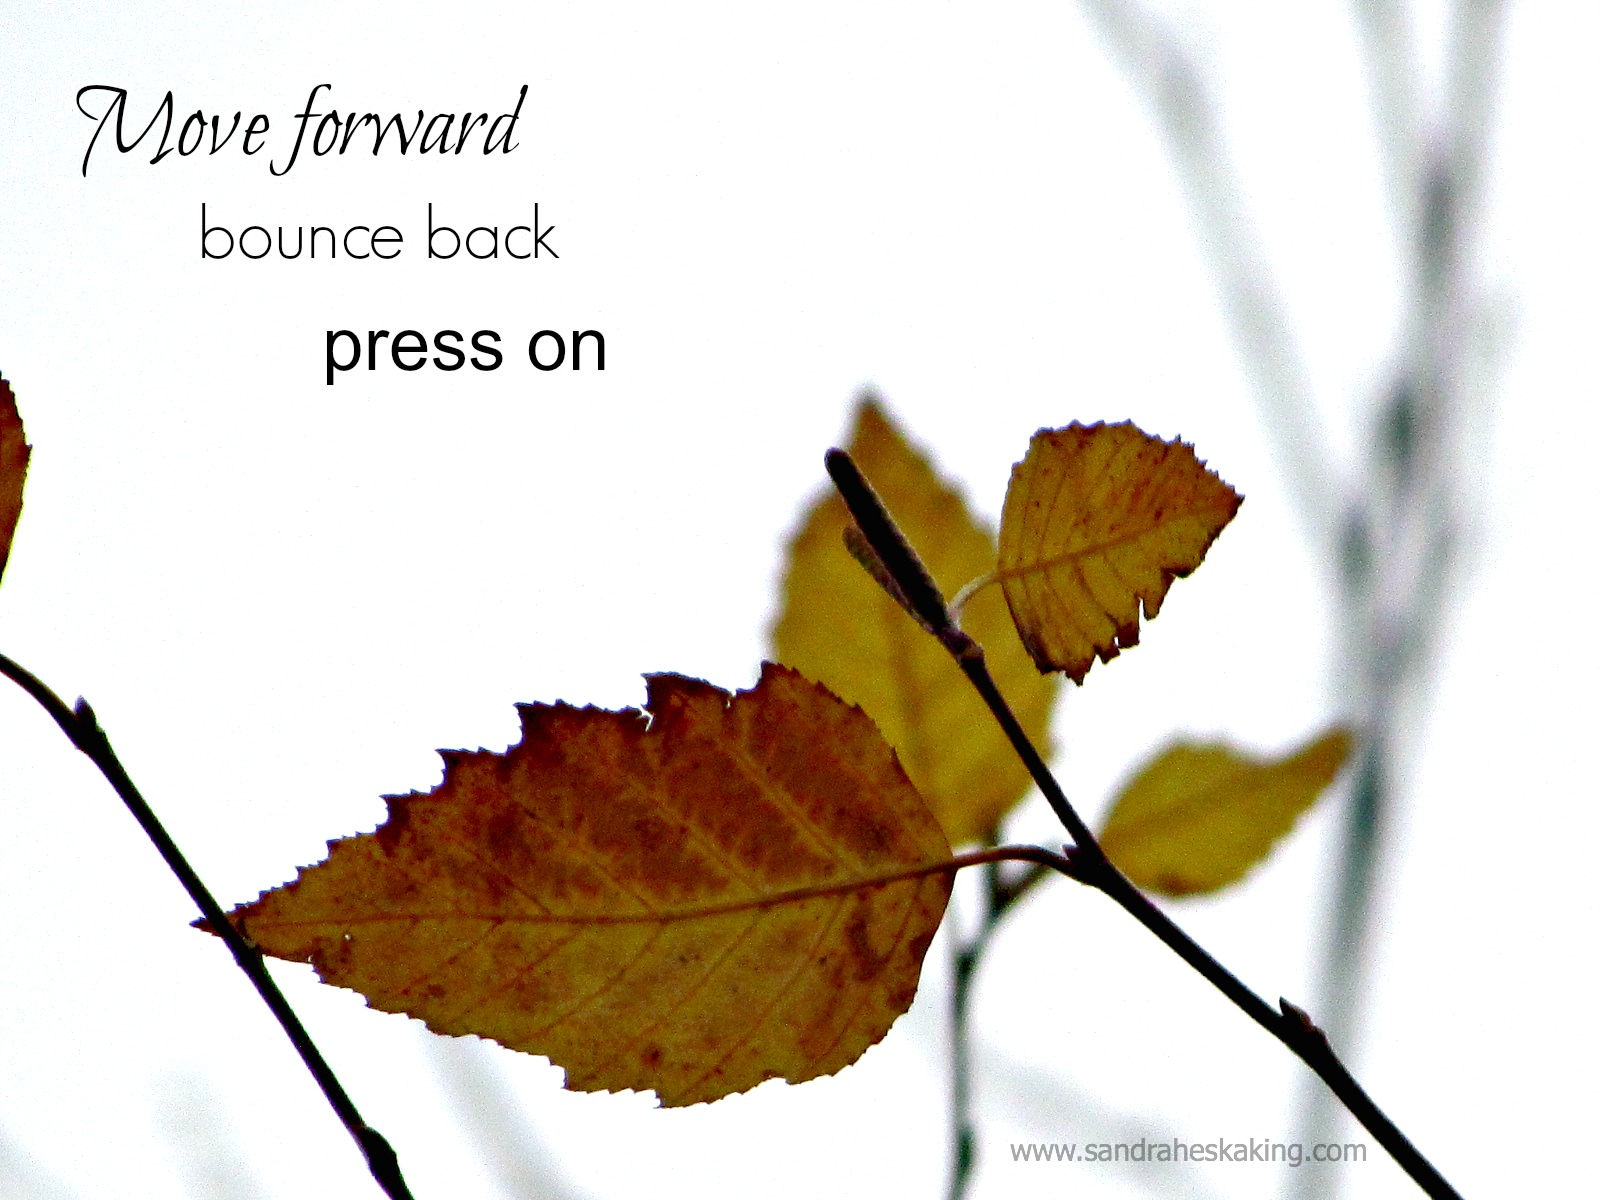 move forward, bounce back, and press on